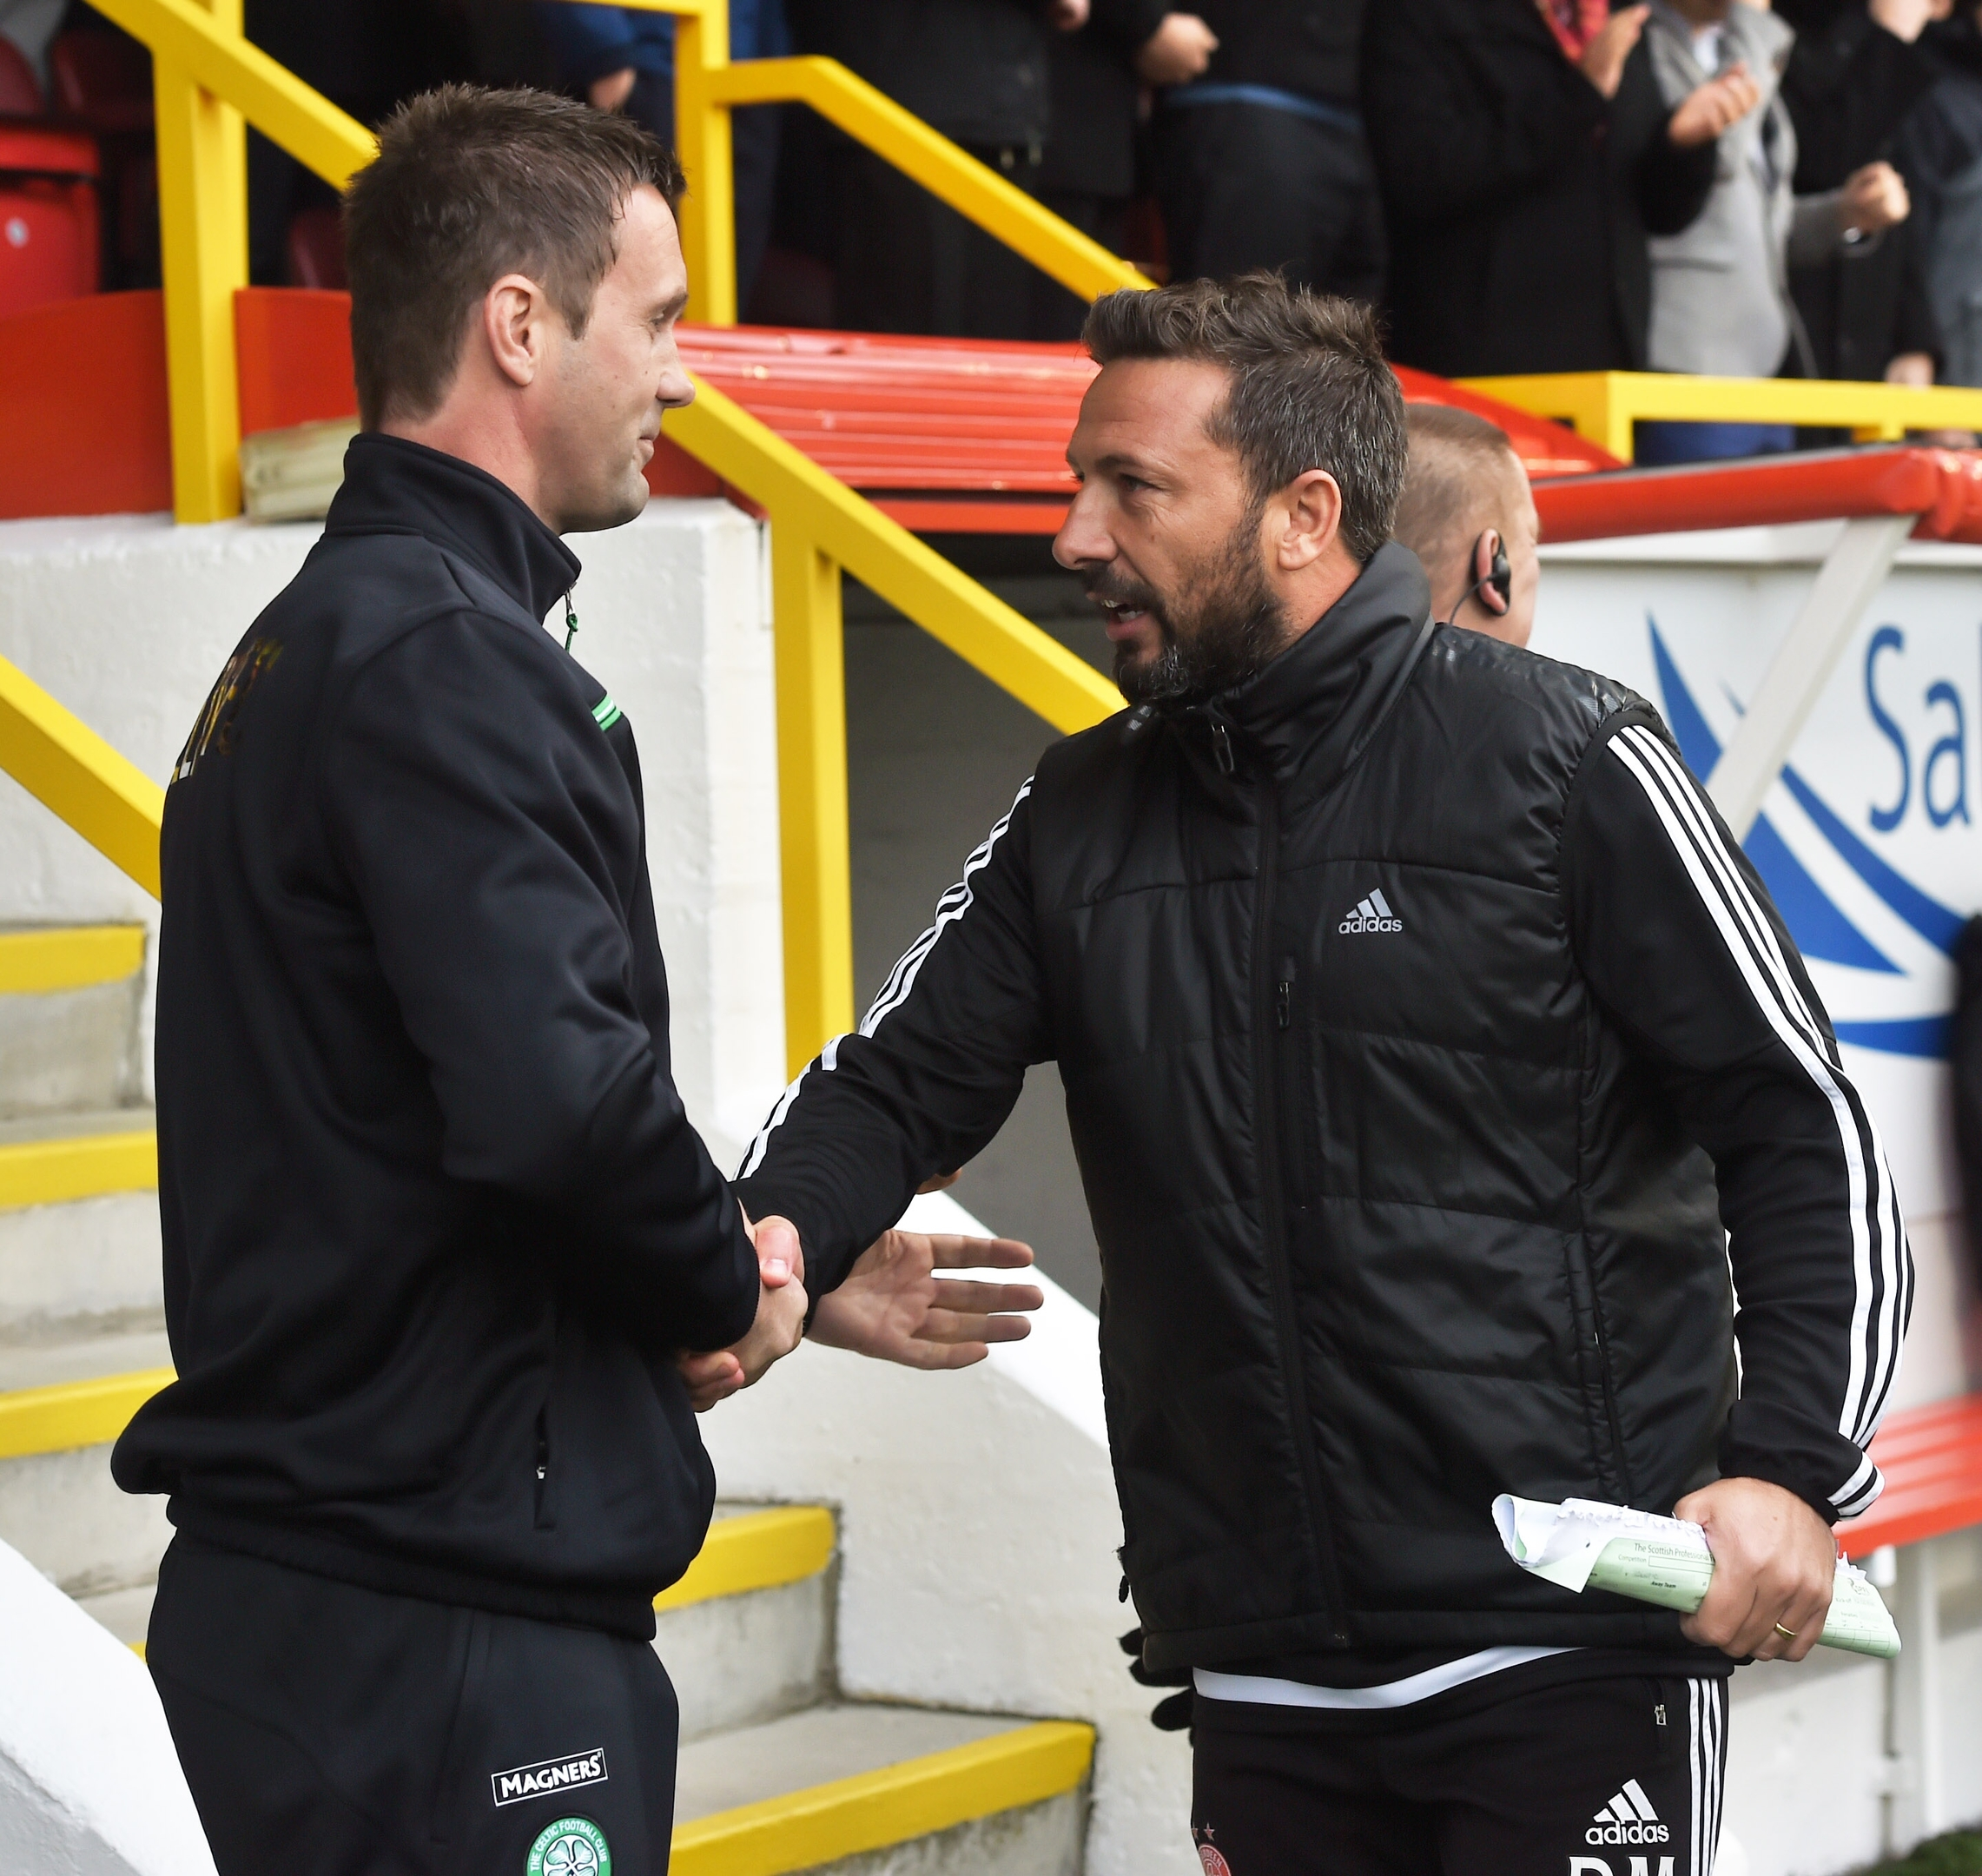 Celtic manager Ronny Deila with Aberdeen manager Derek McInnes ahead of the game